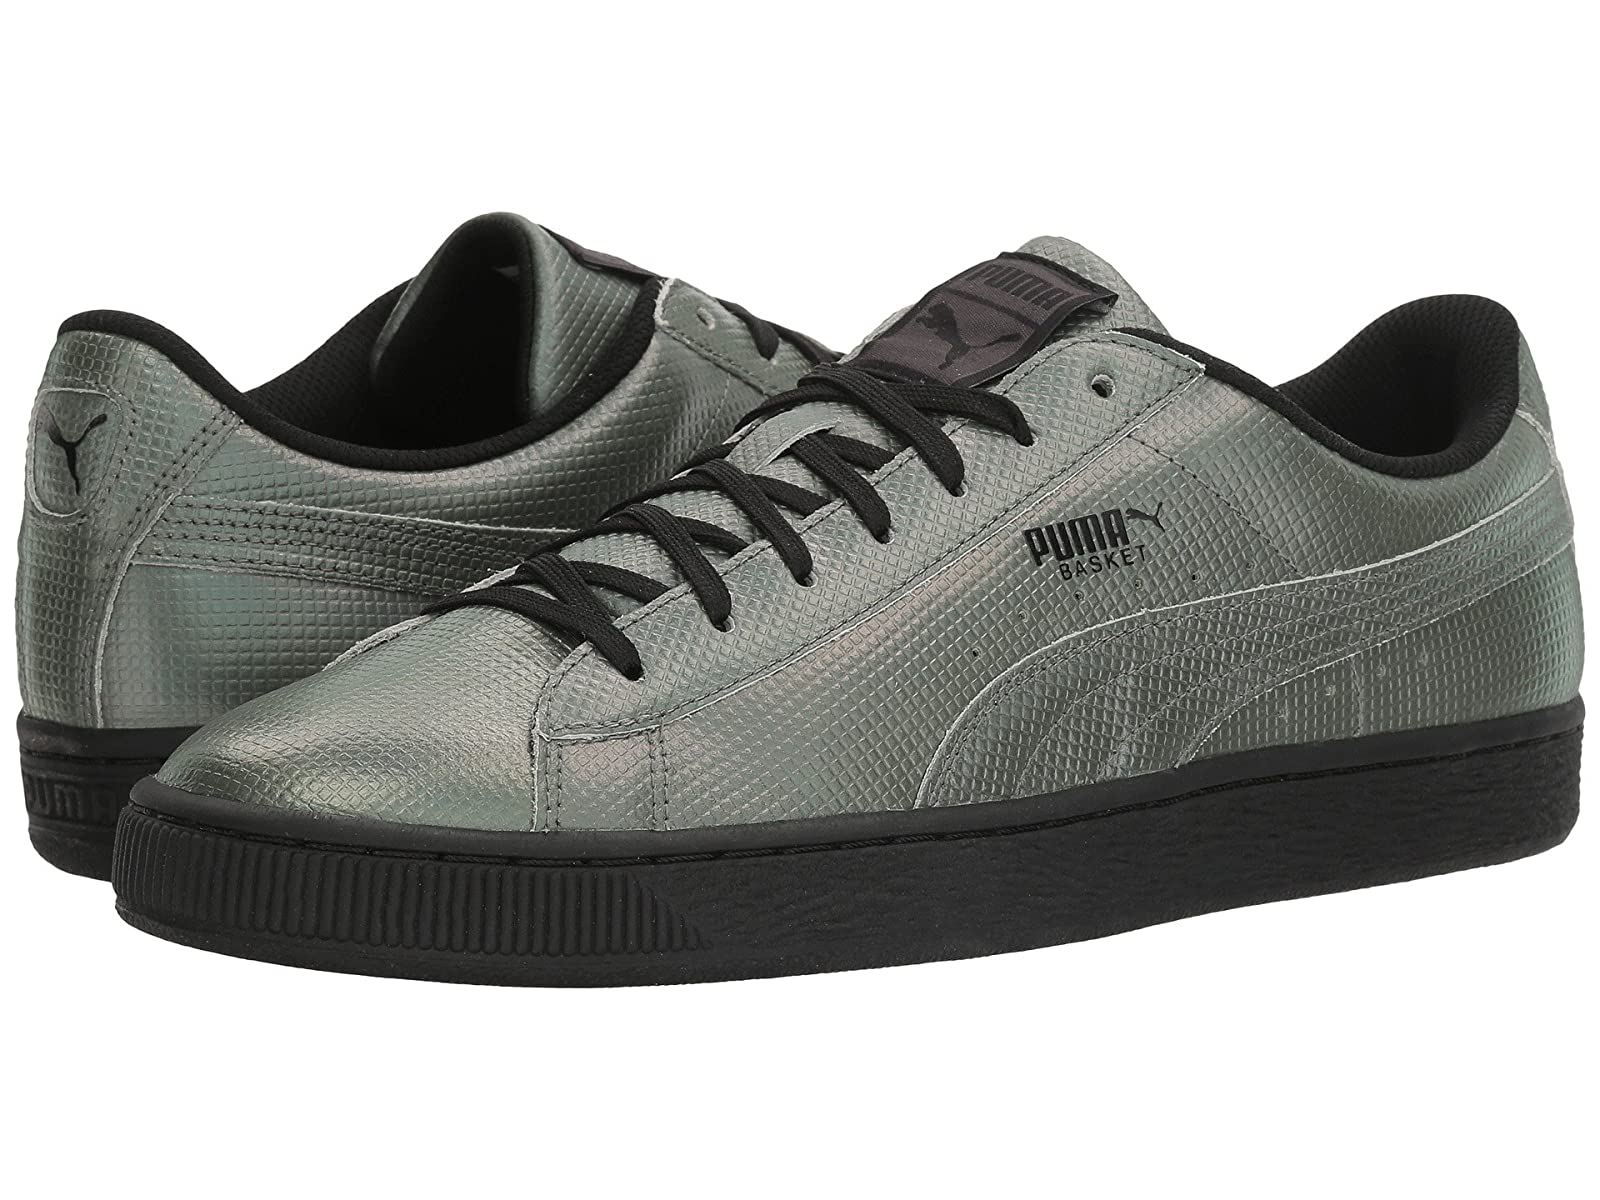 PUMA Basket Classic HolographicCheap and distinctive eye-catching shoes